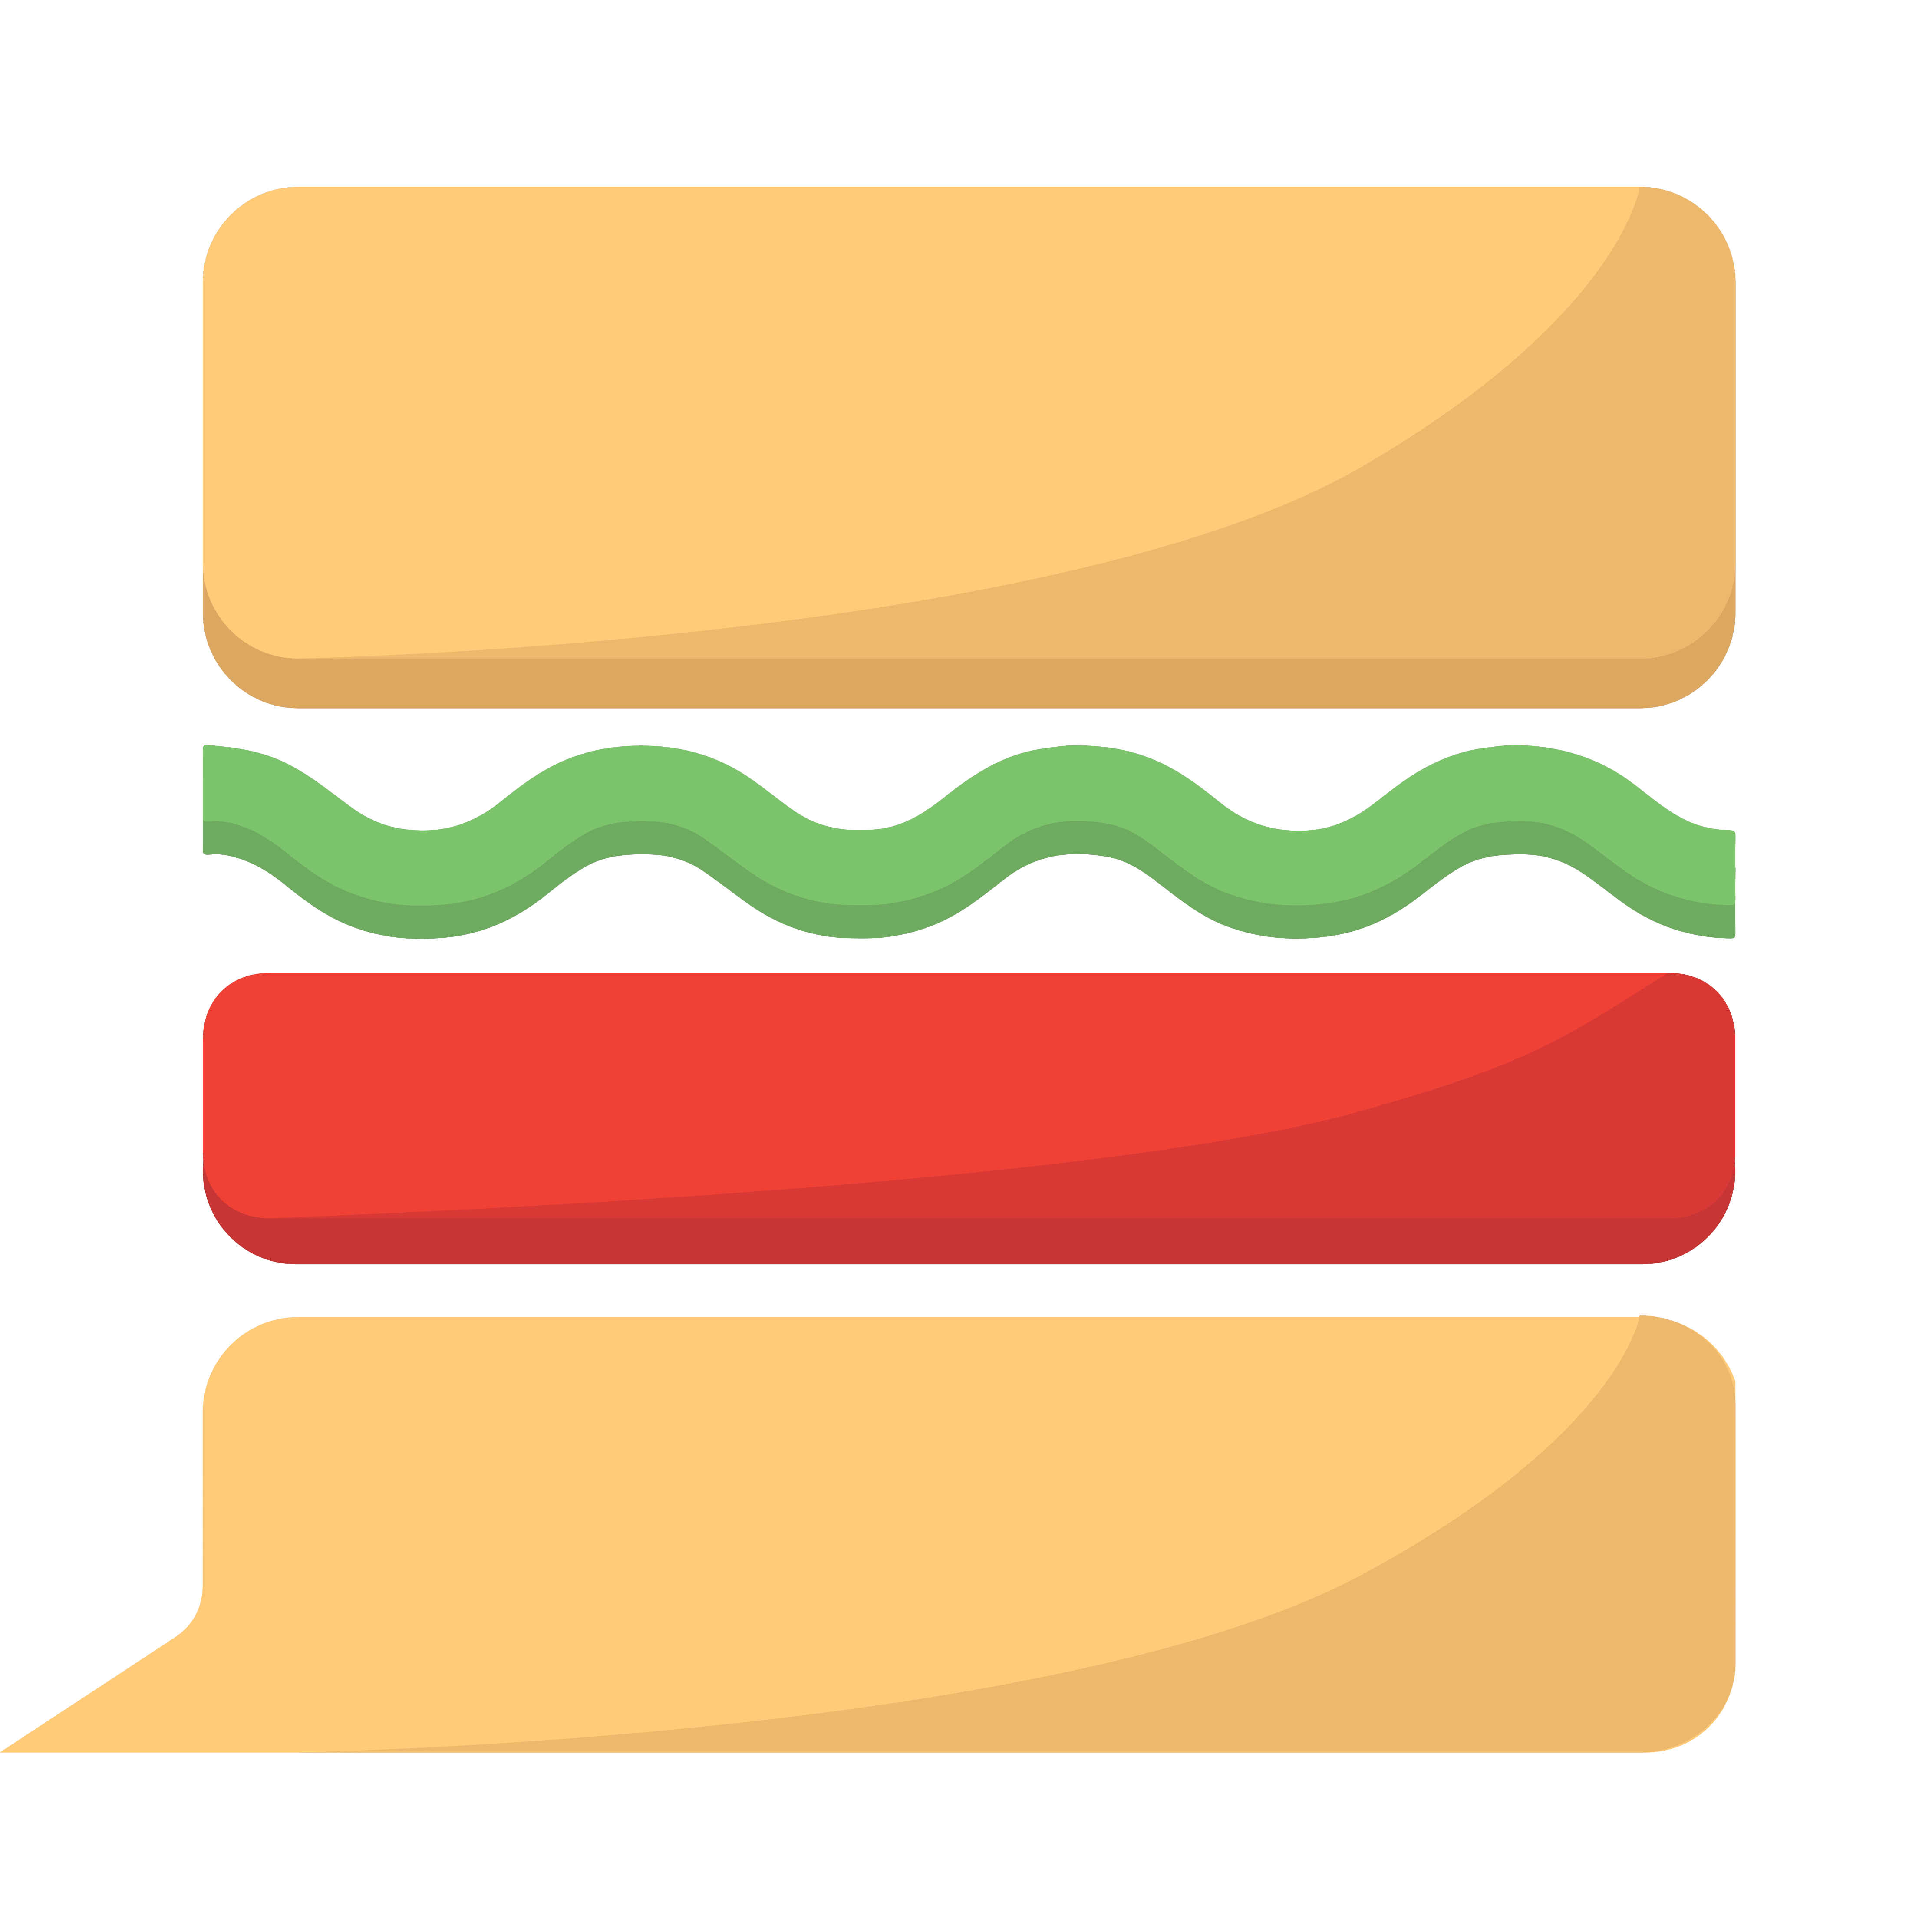 Lunchbunch media kit logo. Lunch clipart lunch bunch